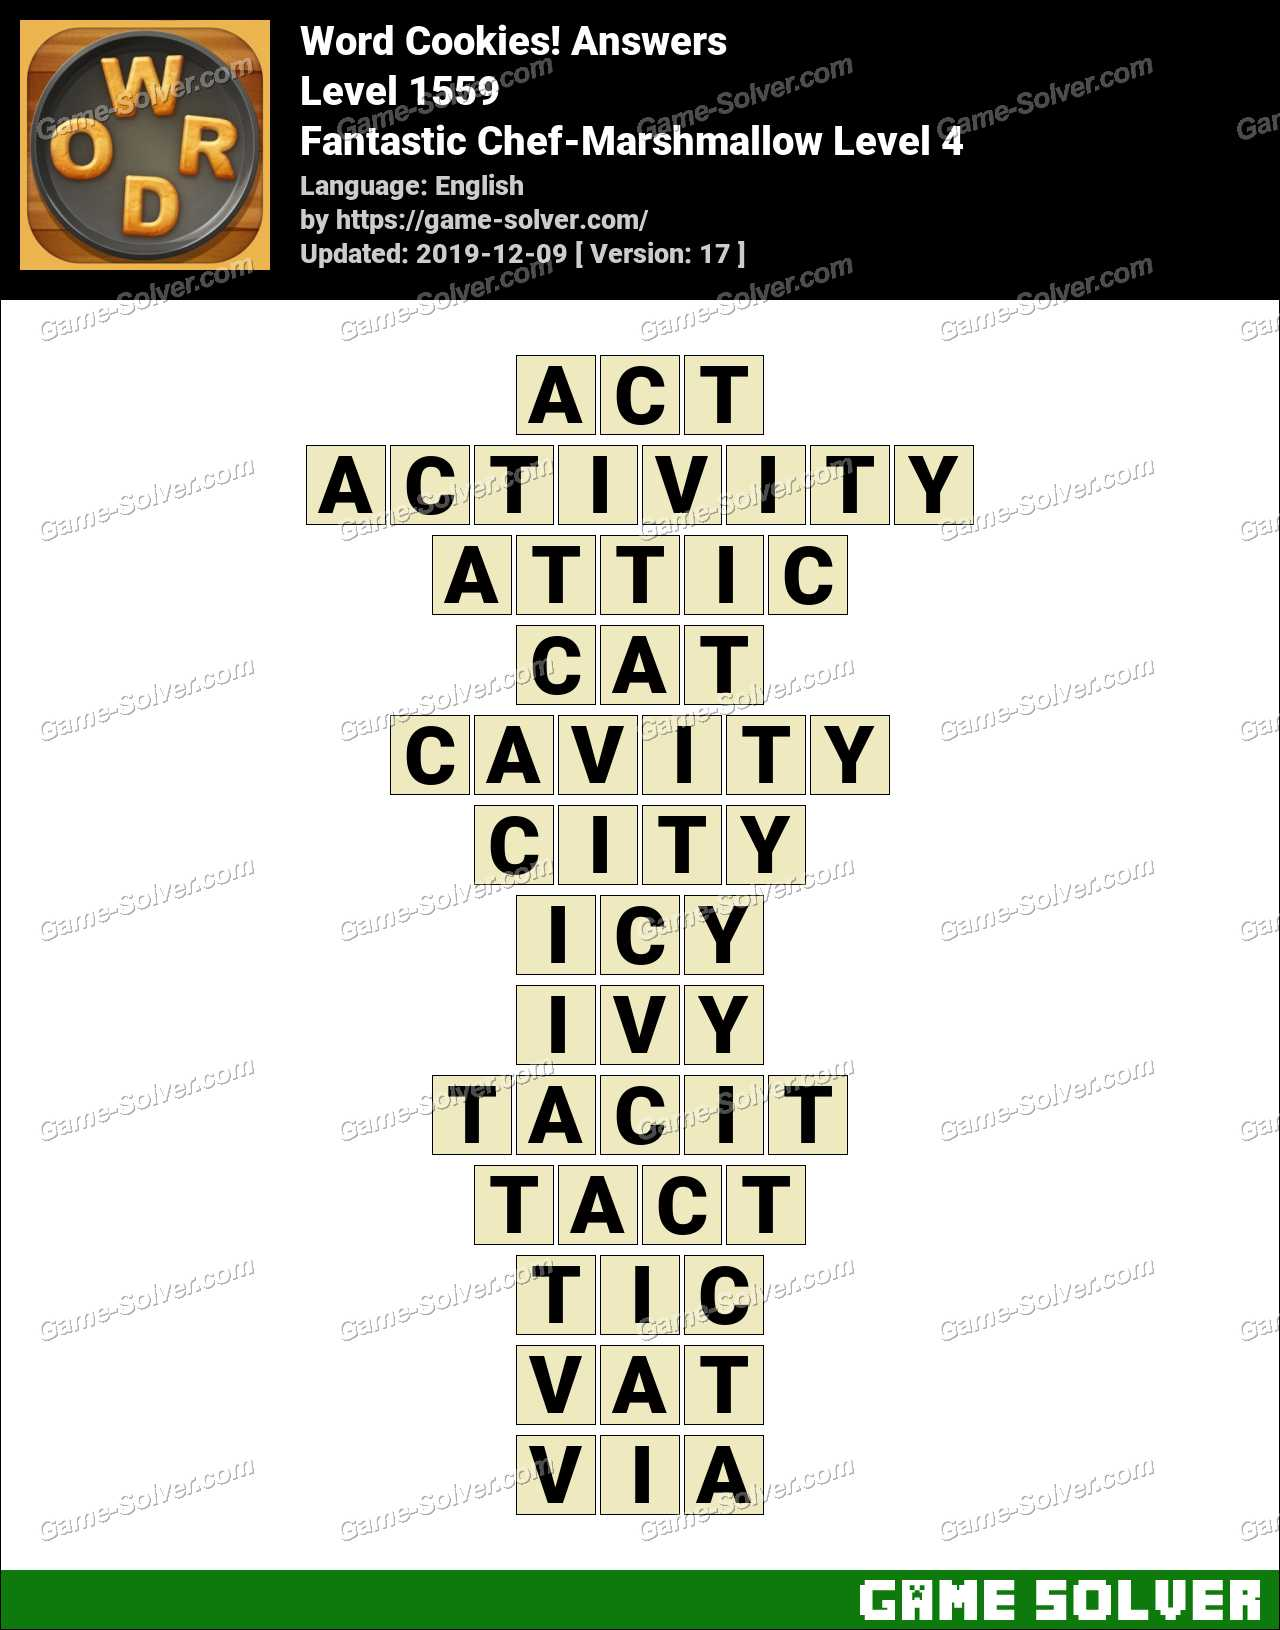 Word Cookies Fantastic Chef-Marshmallow Level 4 Answers